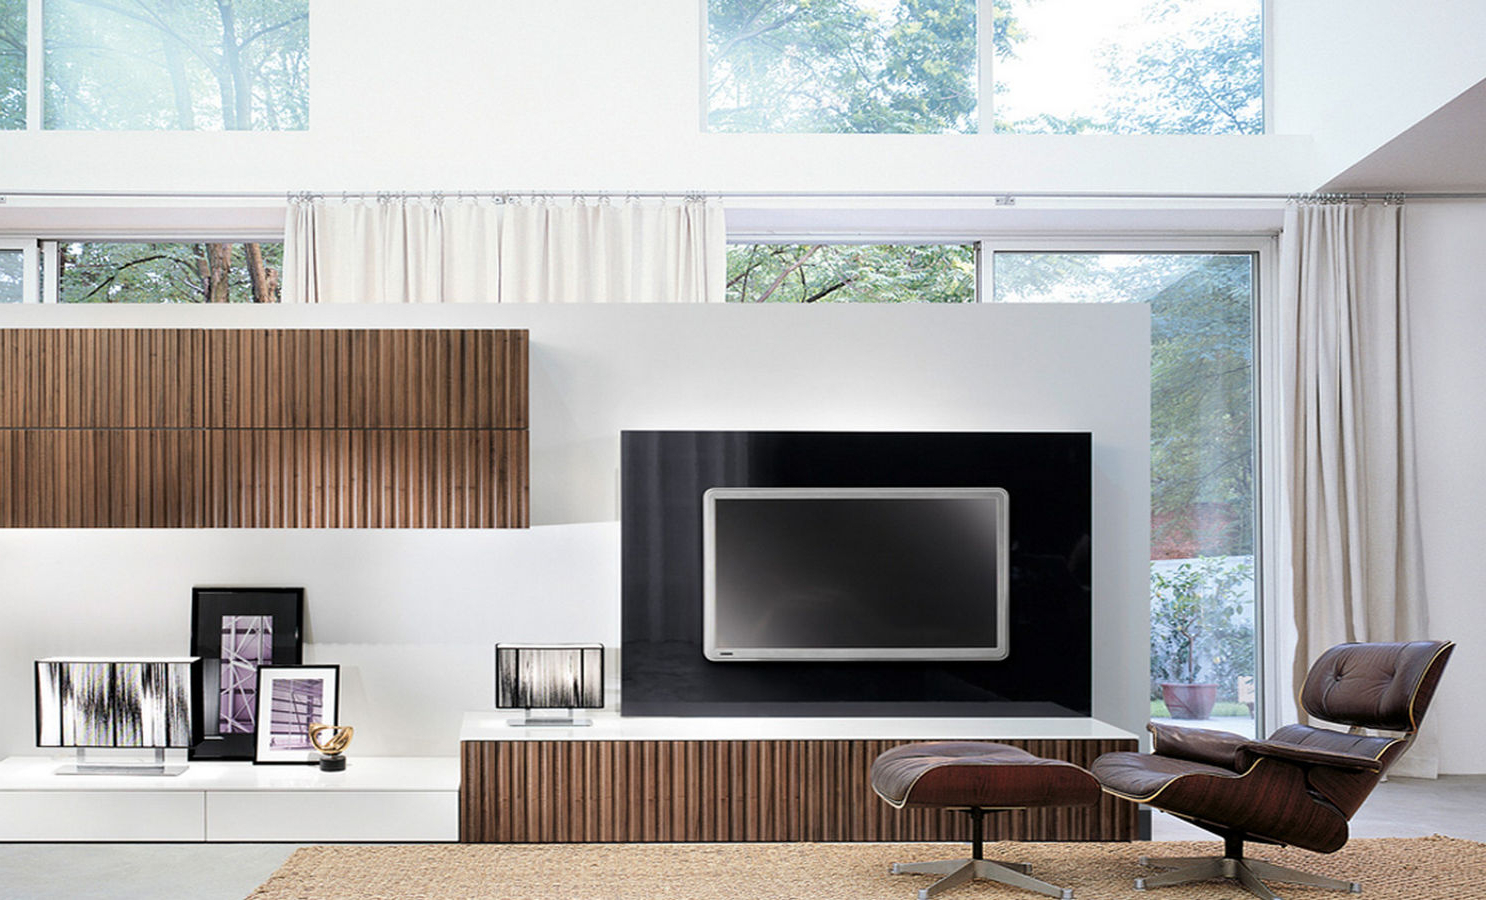 Open Air Spacious Room With White Divider Combine Blonde Wooden Wall Within 2018 Modern Design Tv Cabinets (View 16 of 20)